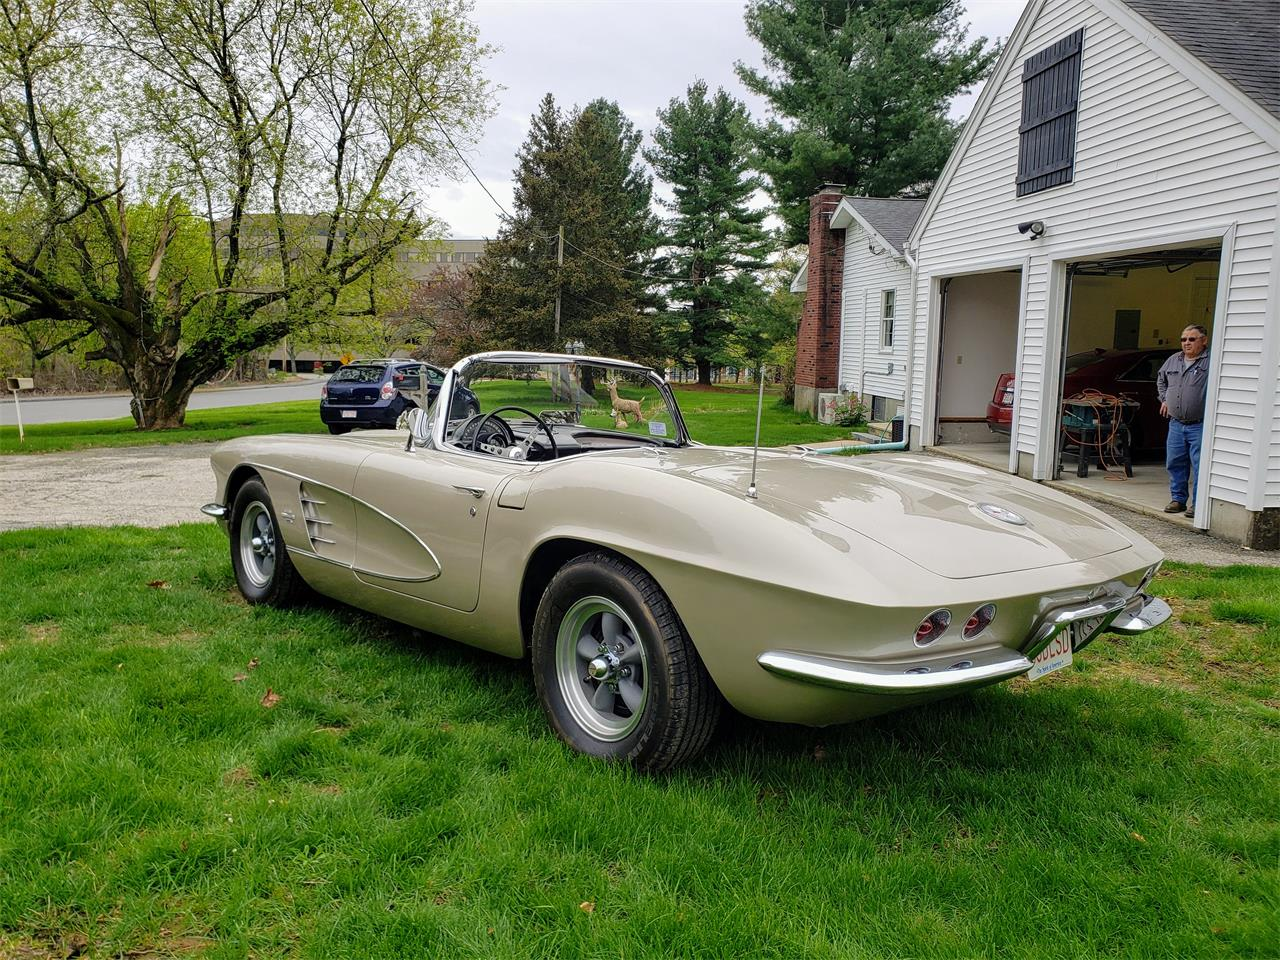 Large Picture of '61 Corvette located in Massachusetts - $58,000.00 Offered by a Private Seller - Q0QW